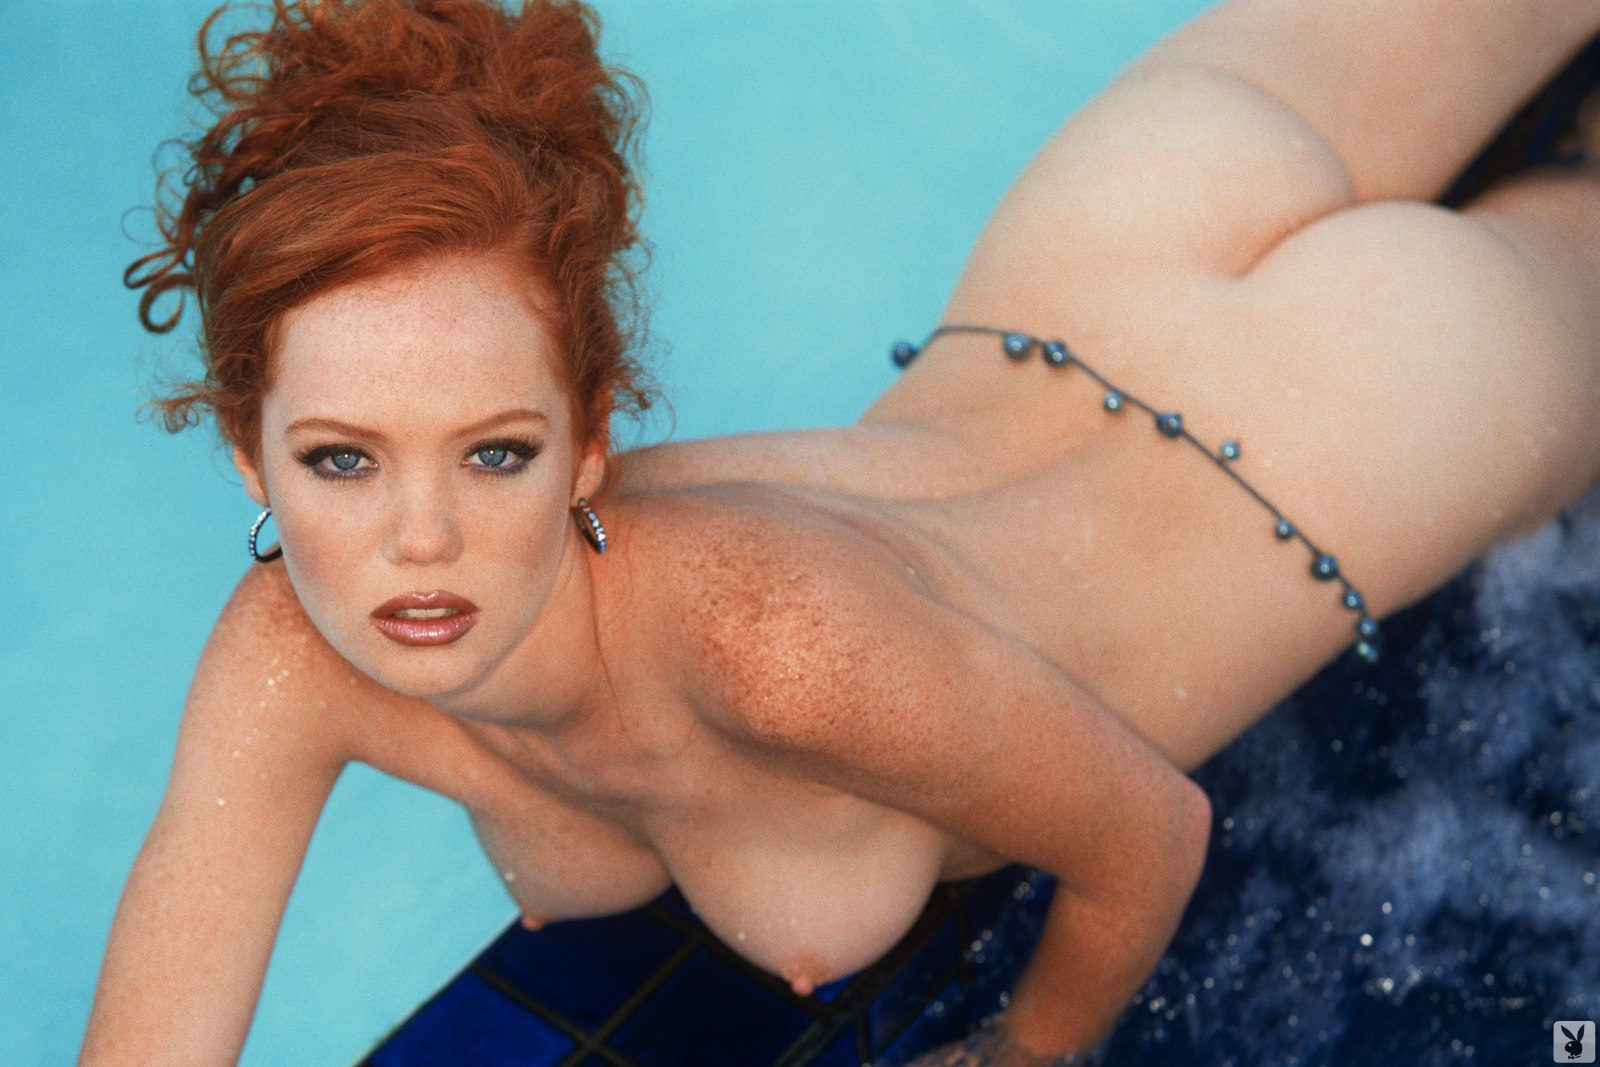 Absolutely agree Hot naked redhead girls with freckles